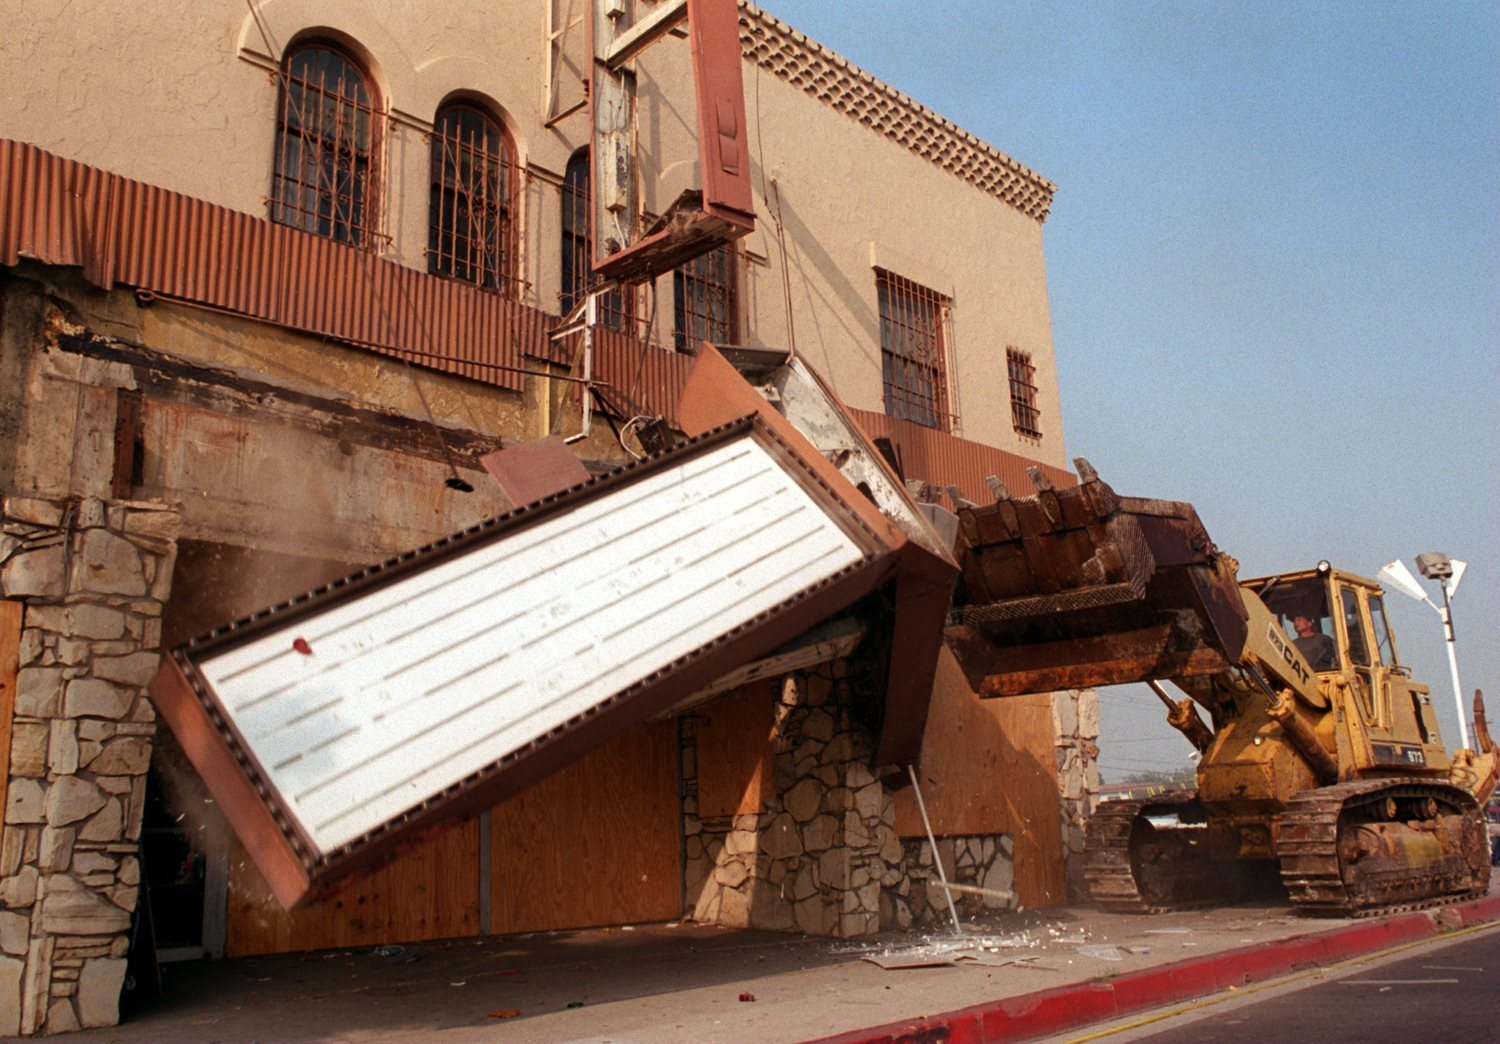 A bulldozer knocks down the marquee of the Pussycat Theater in Buena Park in 1995 after years of legal challenges.